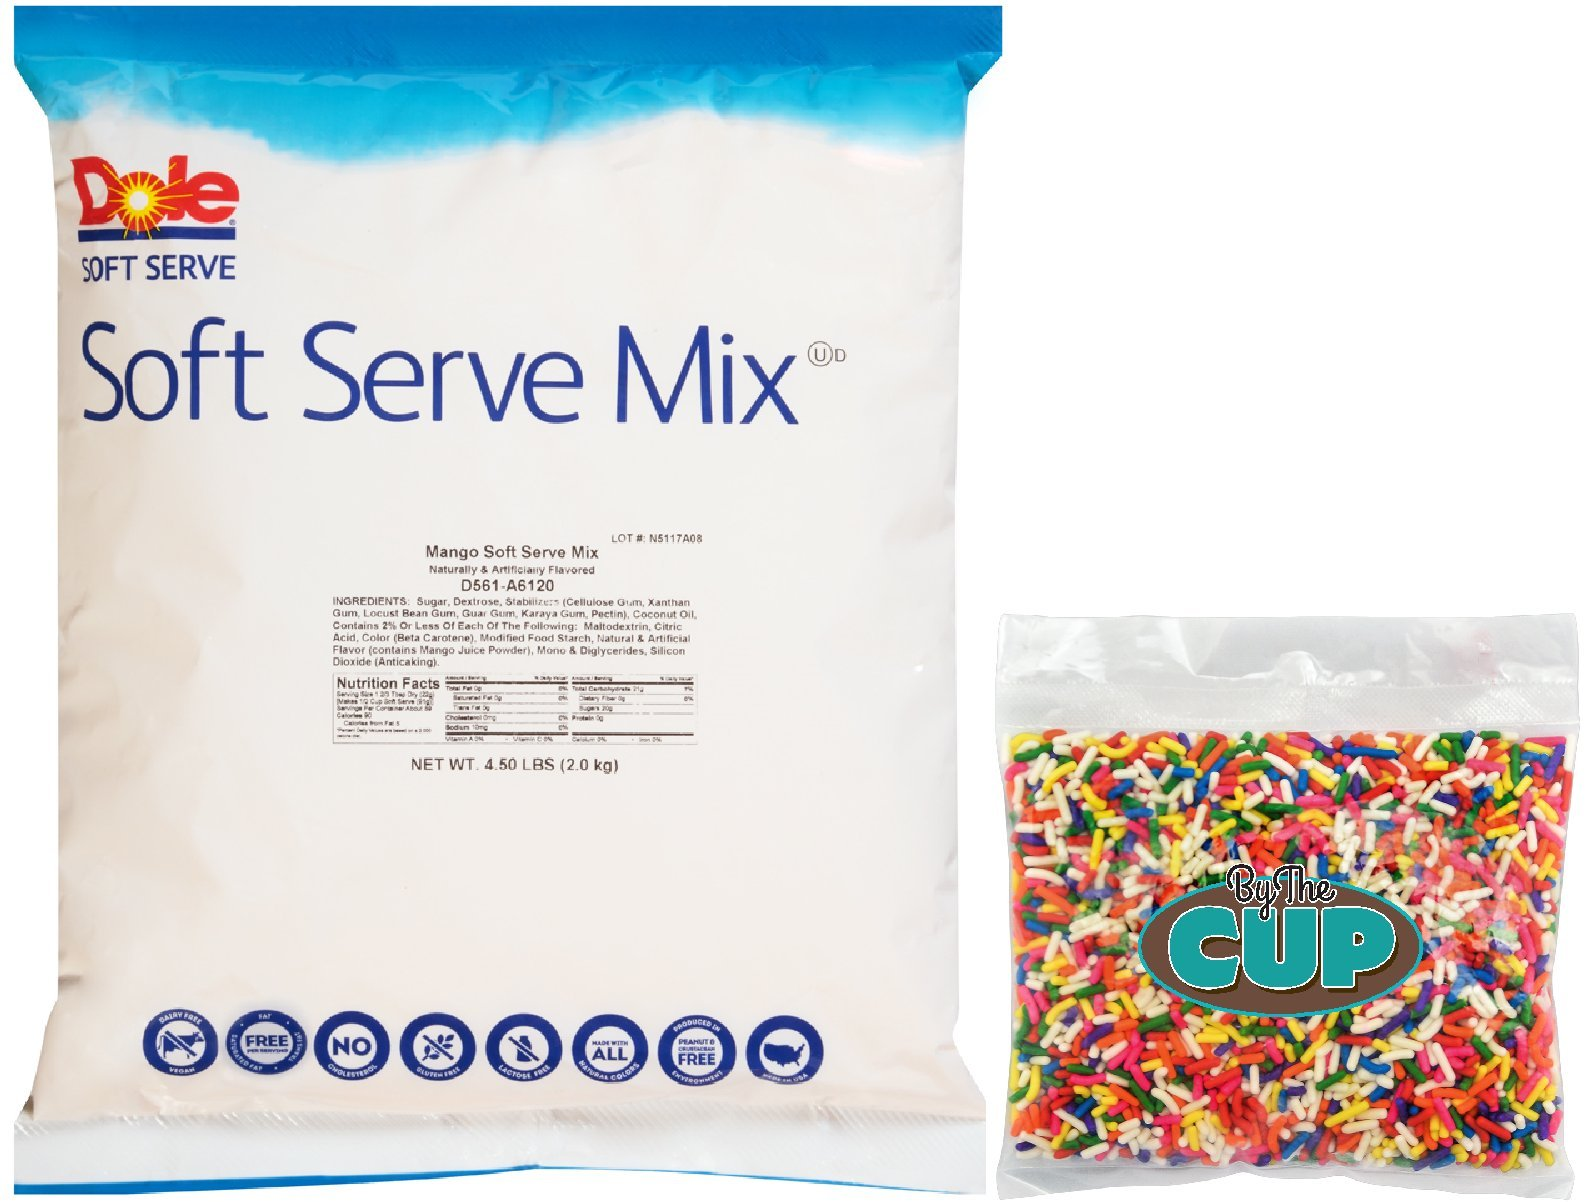 Dole Soft Serve Mix - Mango Dole Whip, Lactose-Free Soft Serve Ice Cream Mix, 4.50 Pound Bag - with By The Cup Rainbow Sprinkles by By The Cup (Image #1)